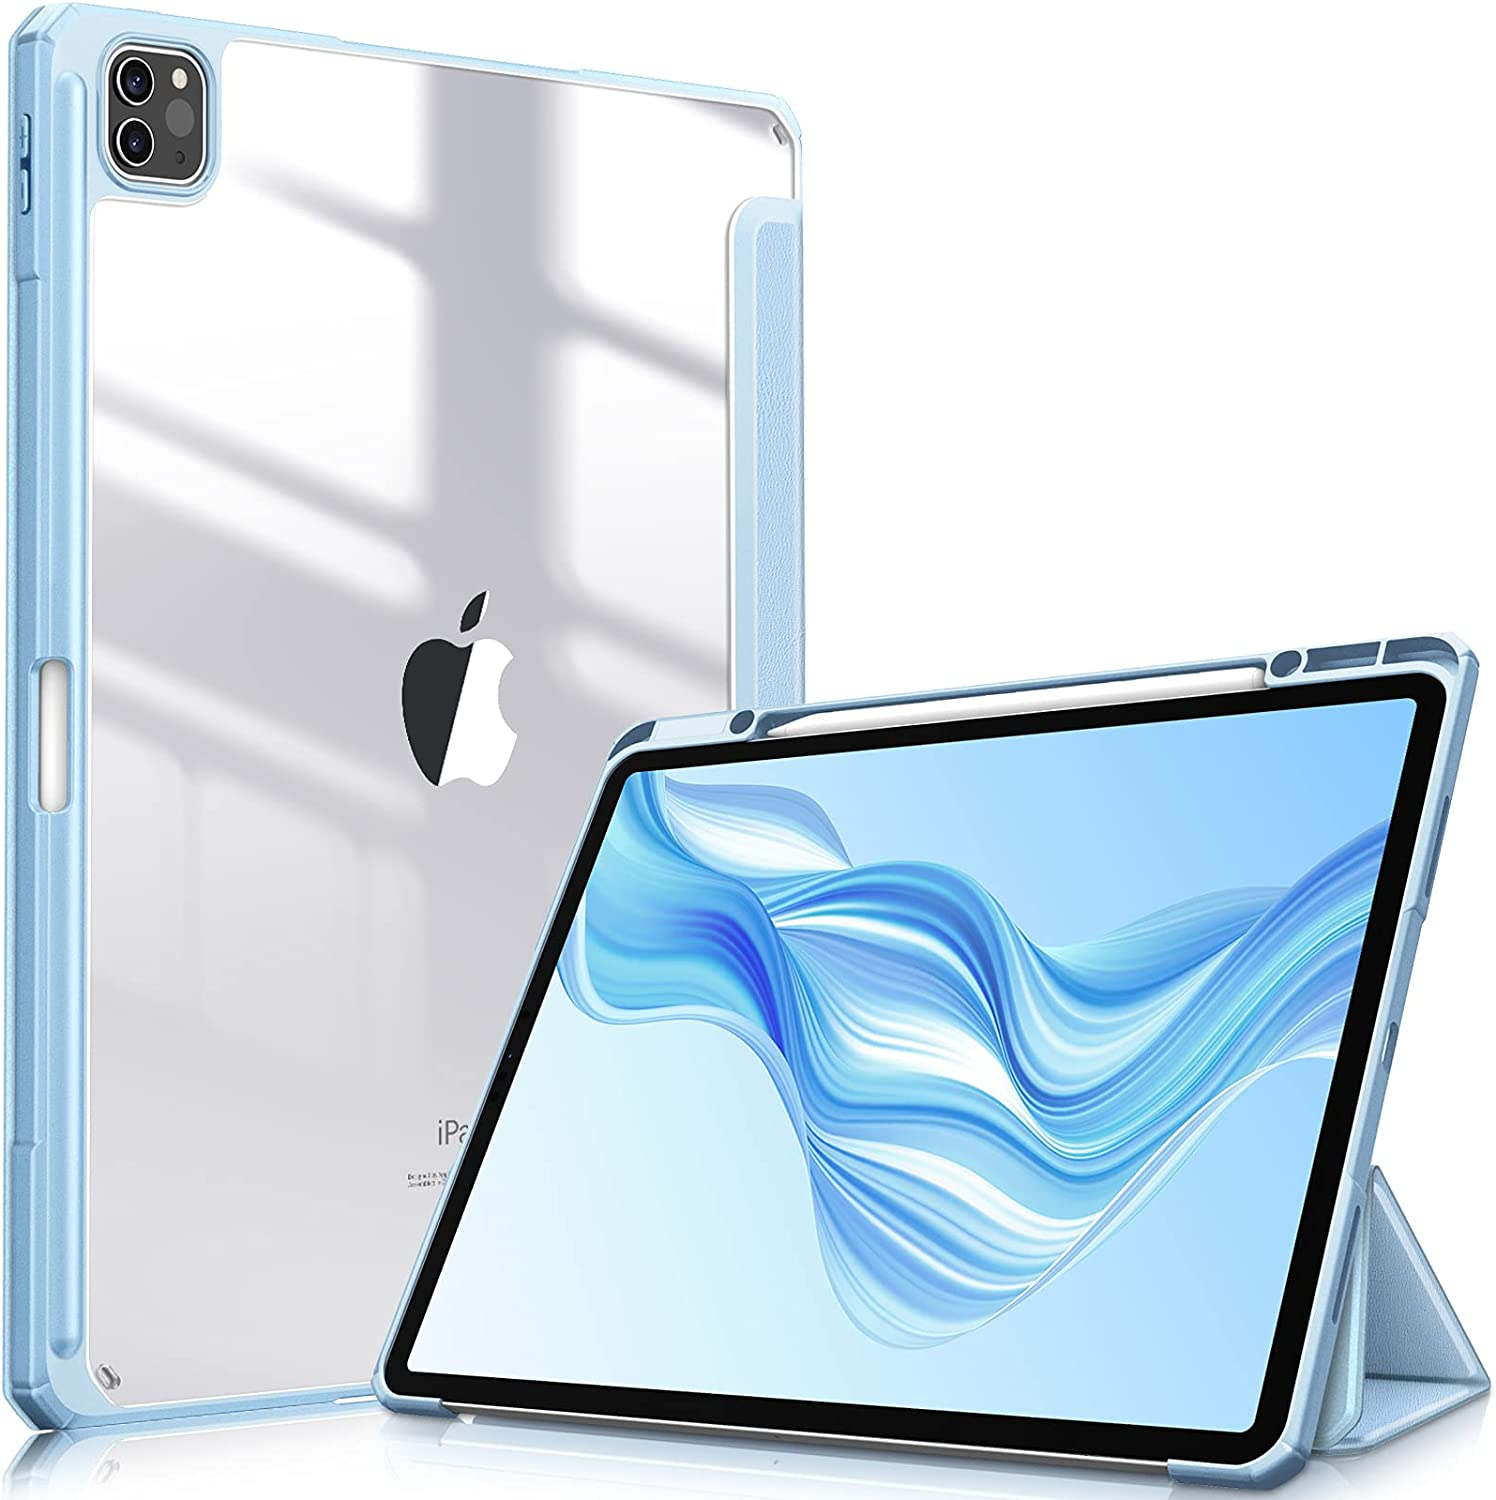 Fintie Hybrid Slim Case for iPad Pro 12.9-inch 5th Generation 2021 - [Built-in Pencil Holder] Shockproof Cover with Clear Transparent Back Shell, Also Fit iPad Pro 12.9